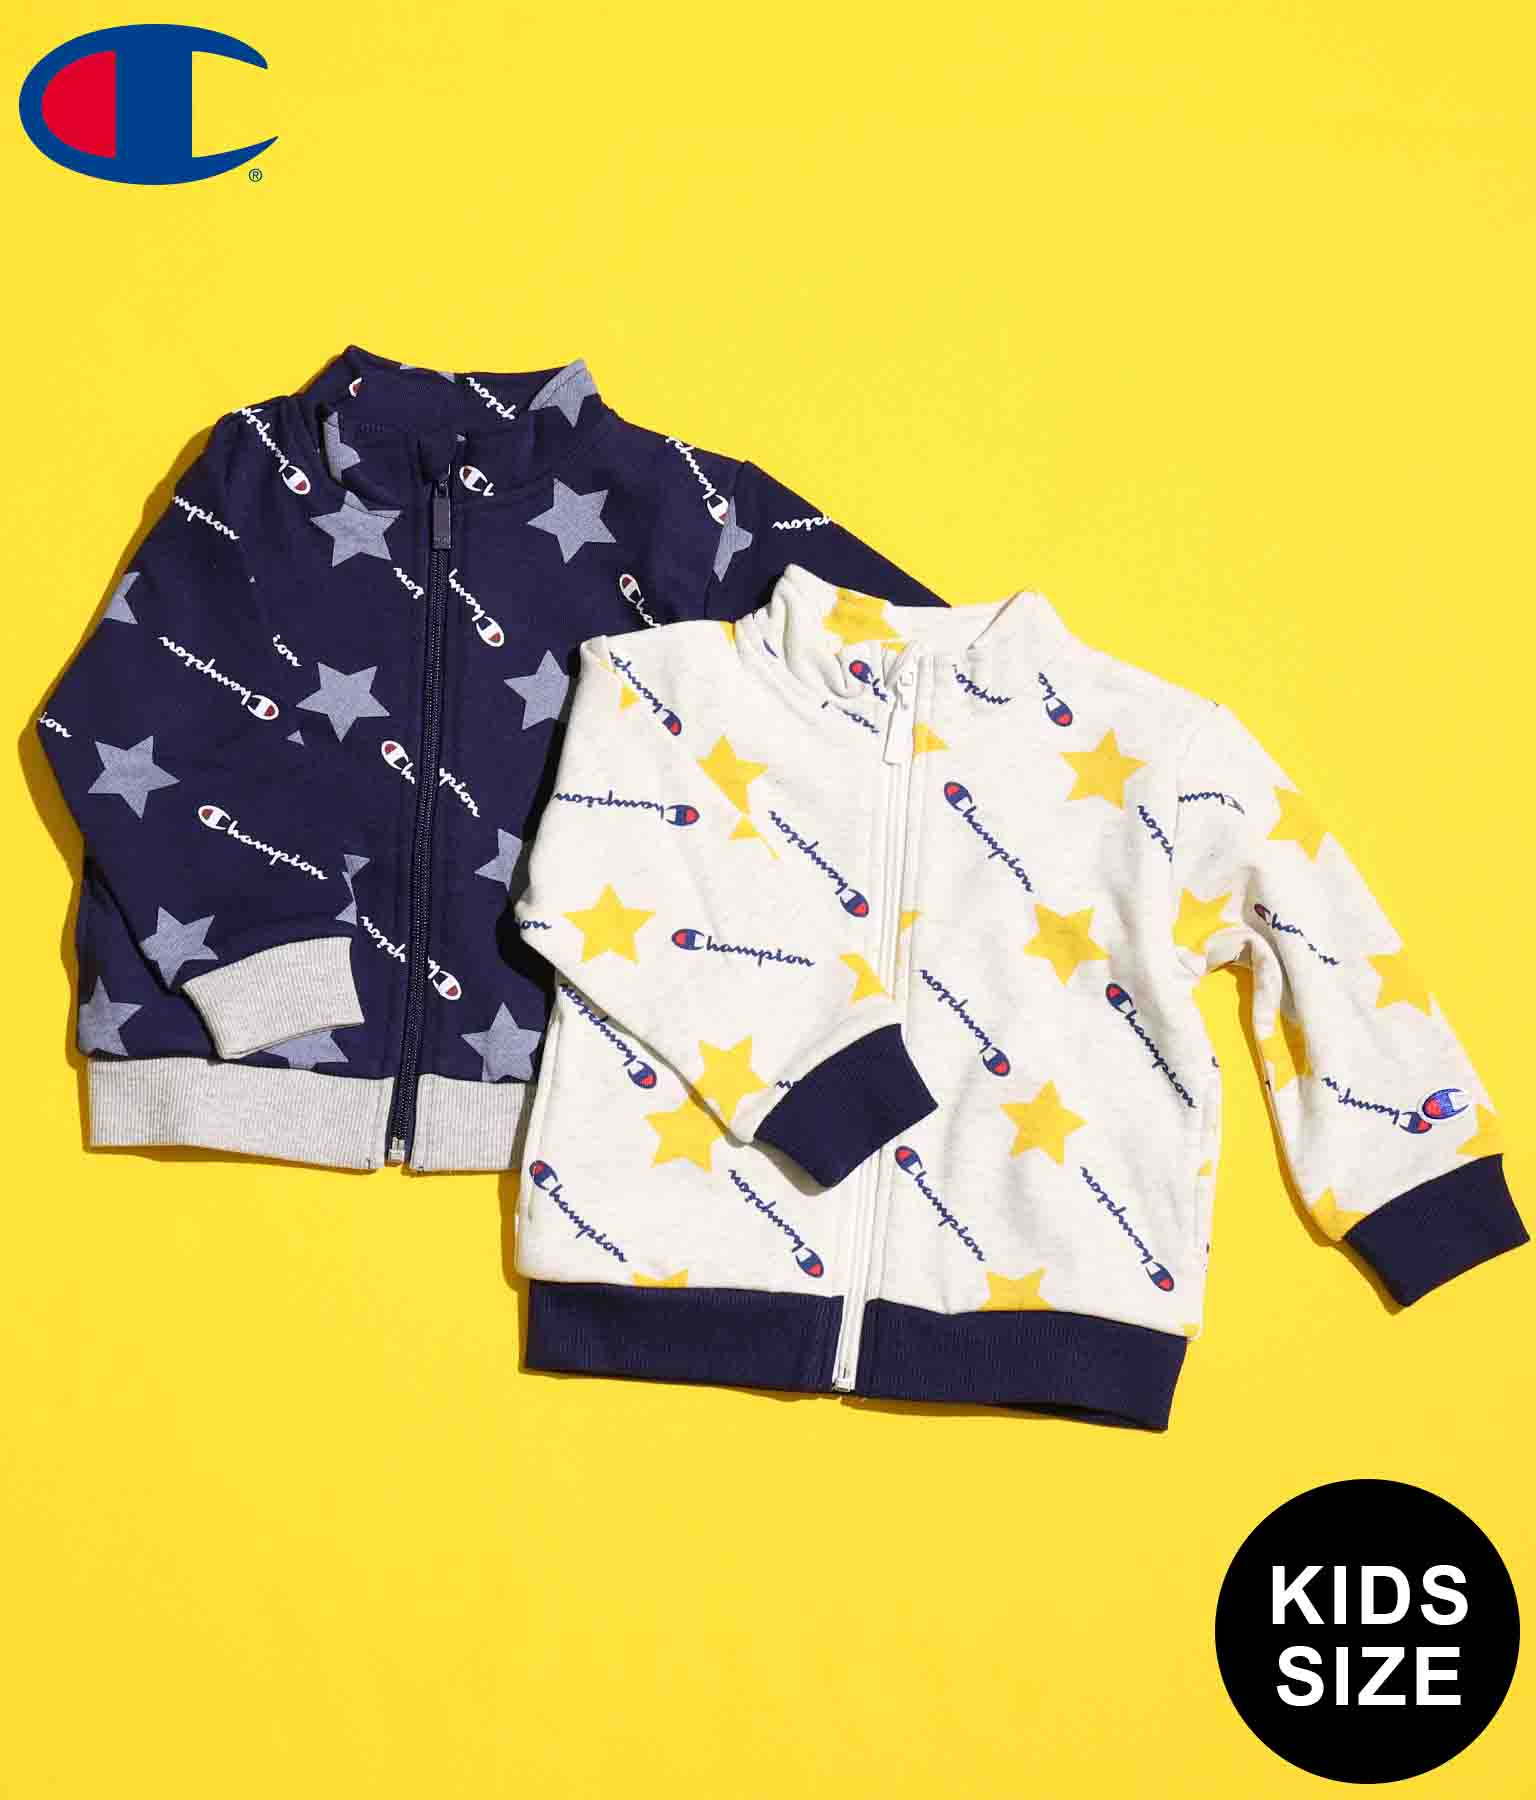 ChampionKIDS FULL ZIP OUTER